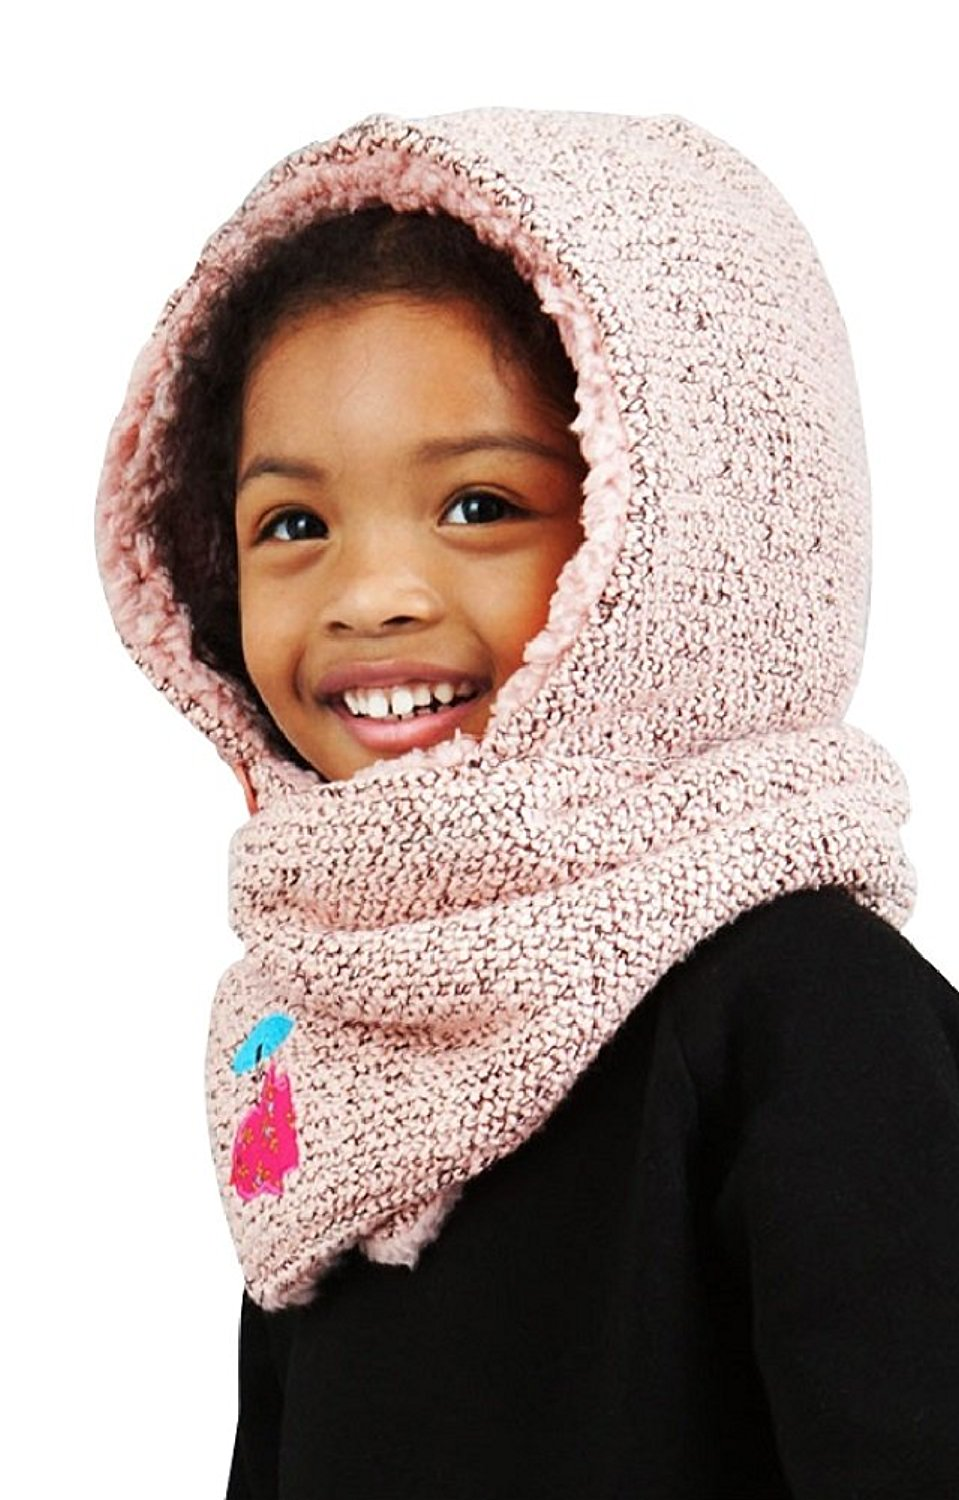 Unique Hooded Neck Warmer Knitting Pattern Sketch - Sewing Pattern ...